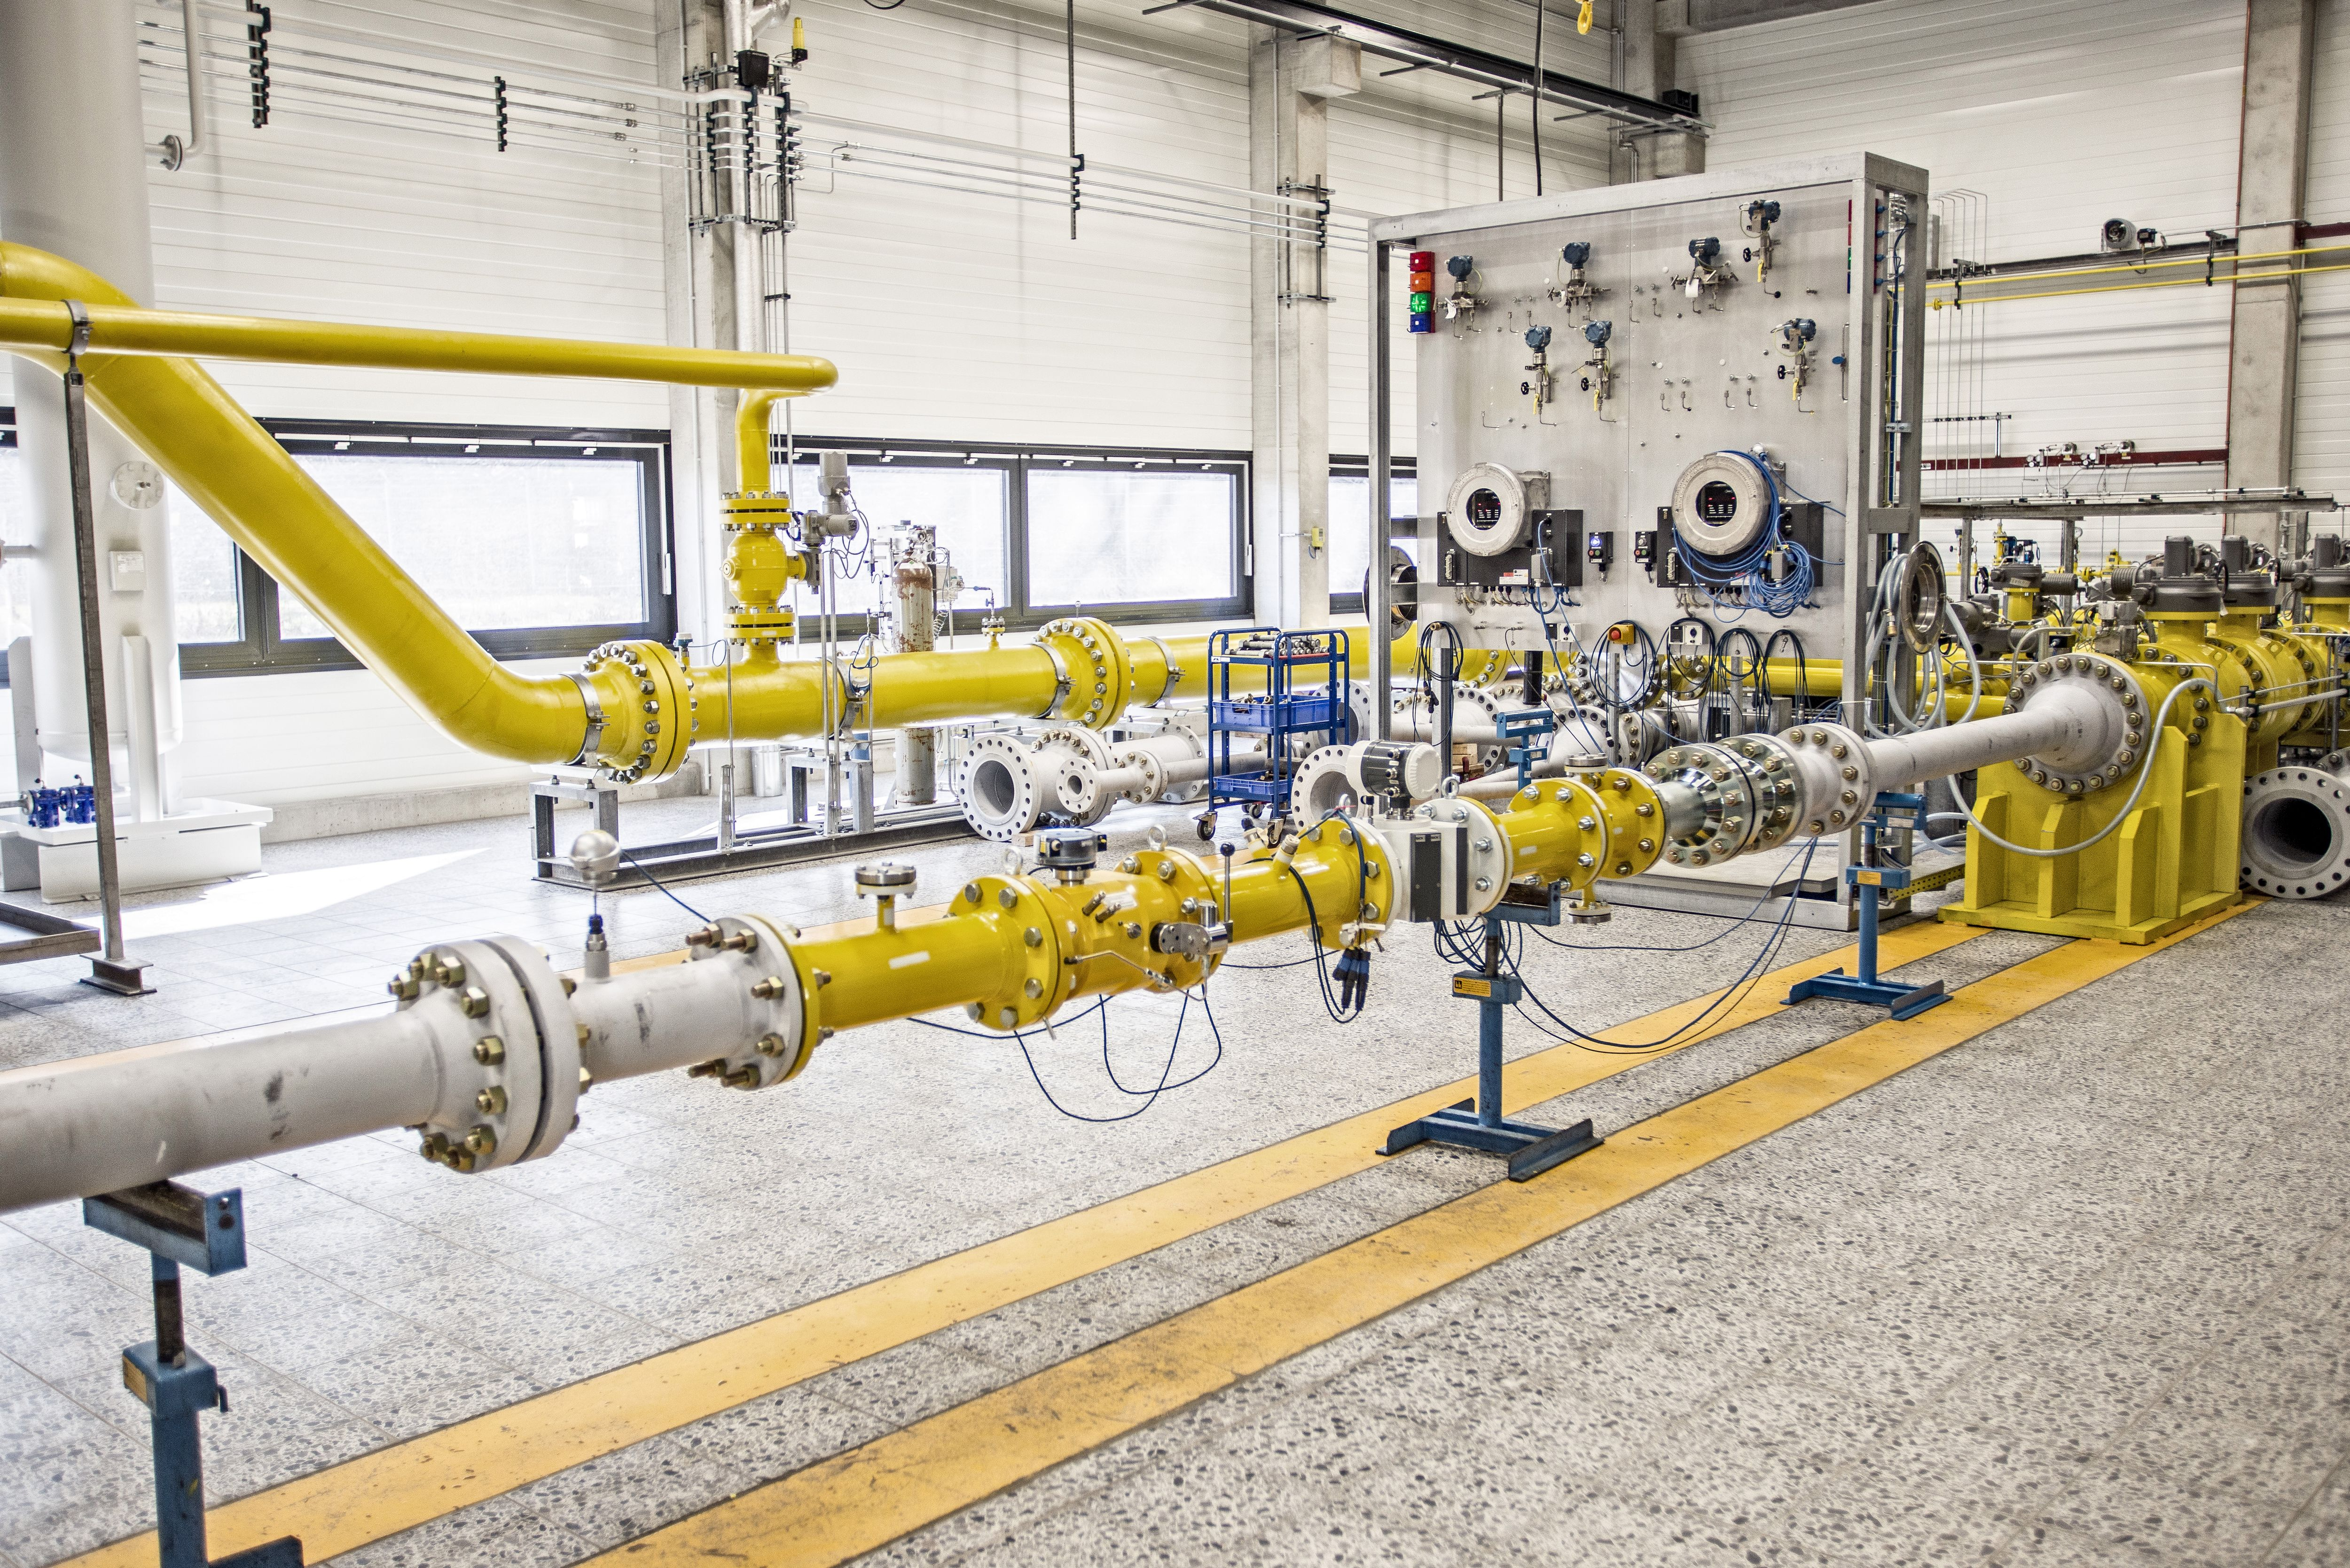 Photo 1: EnBW High Pressure Gas Calibration Facility in Stuttgart